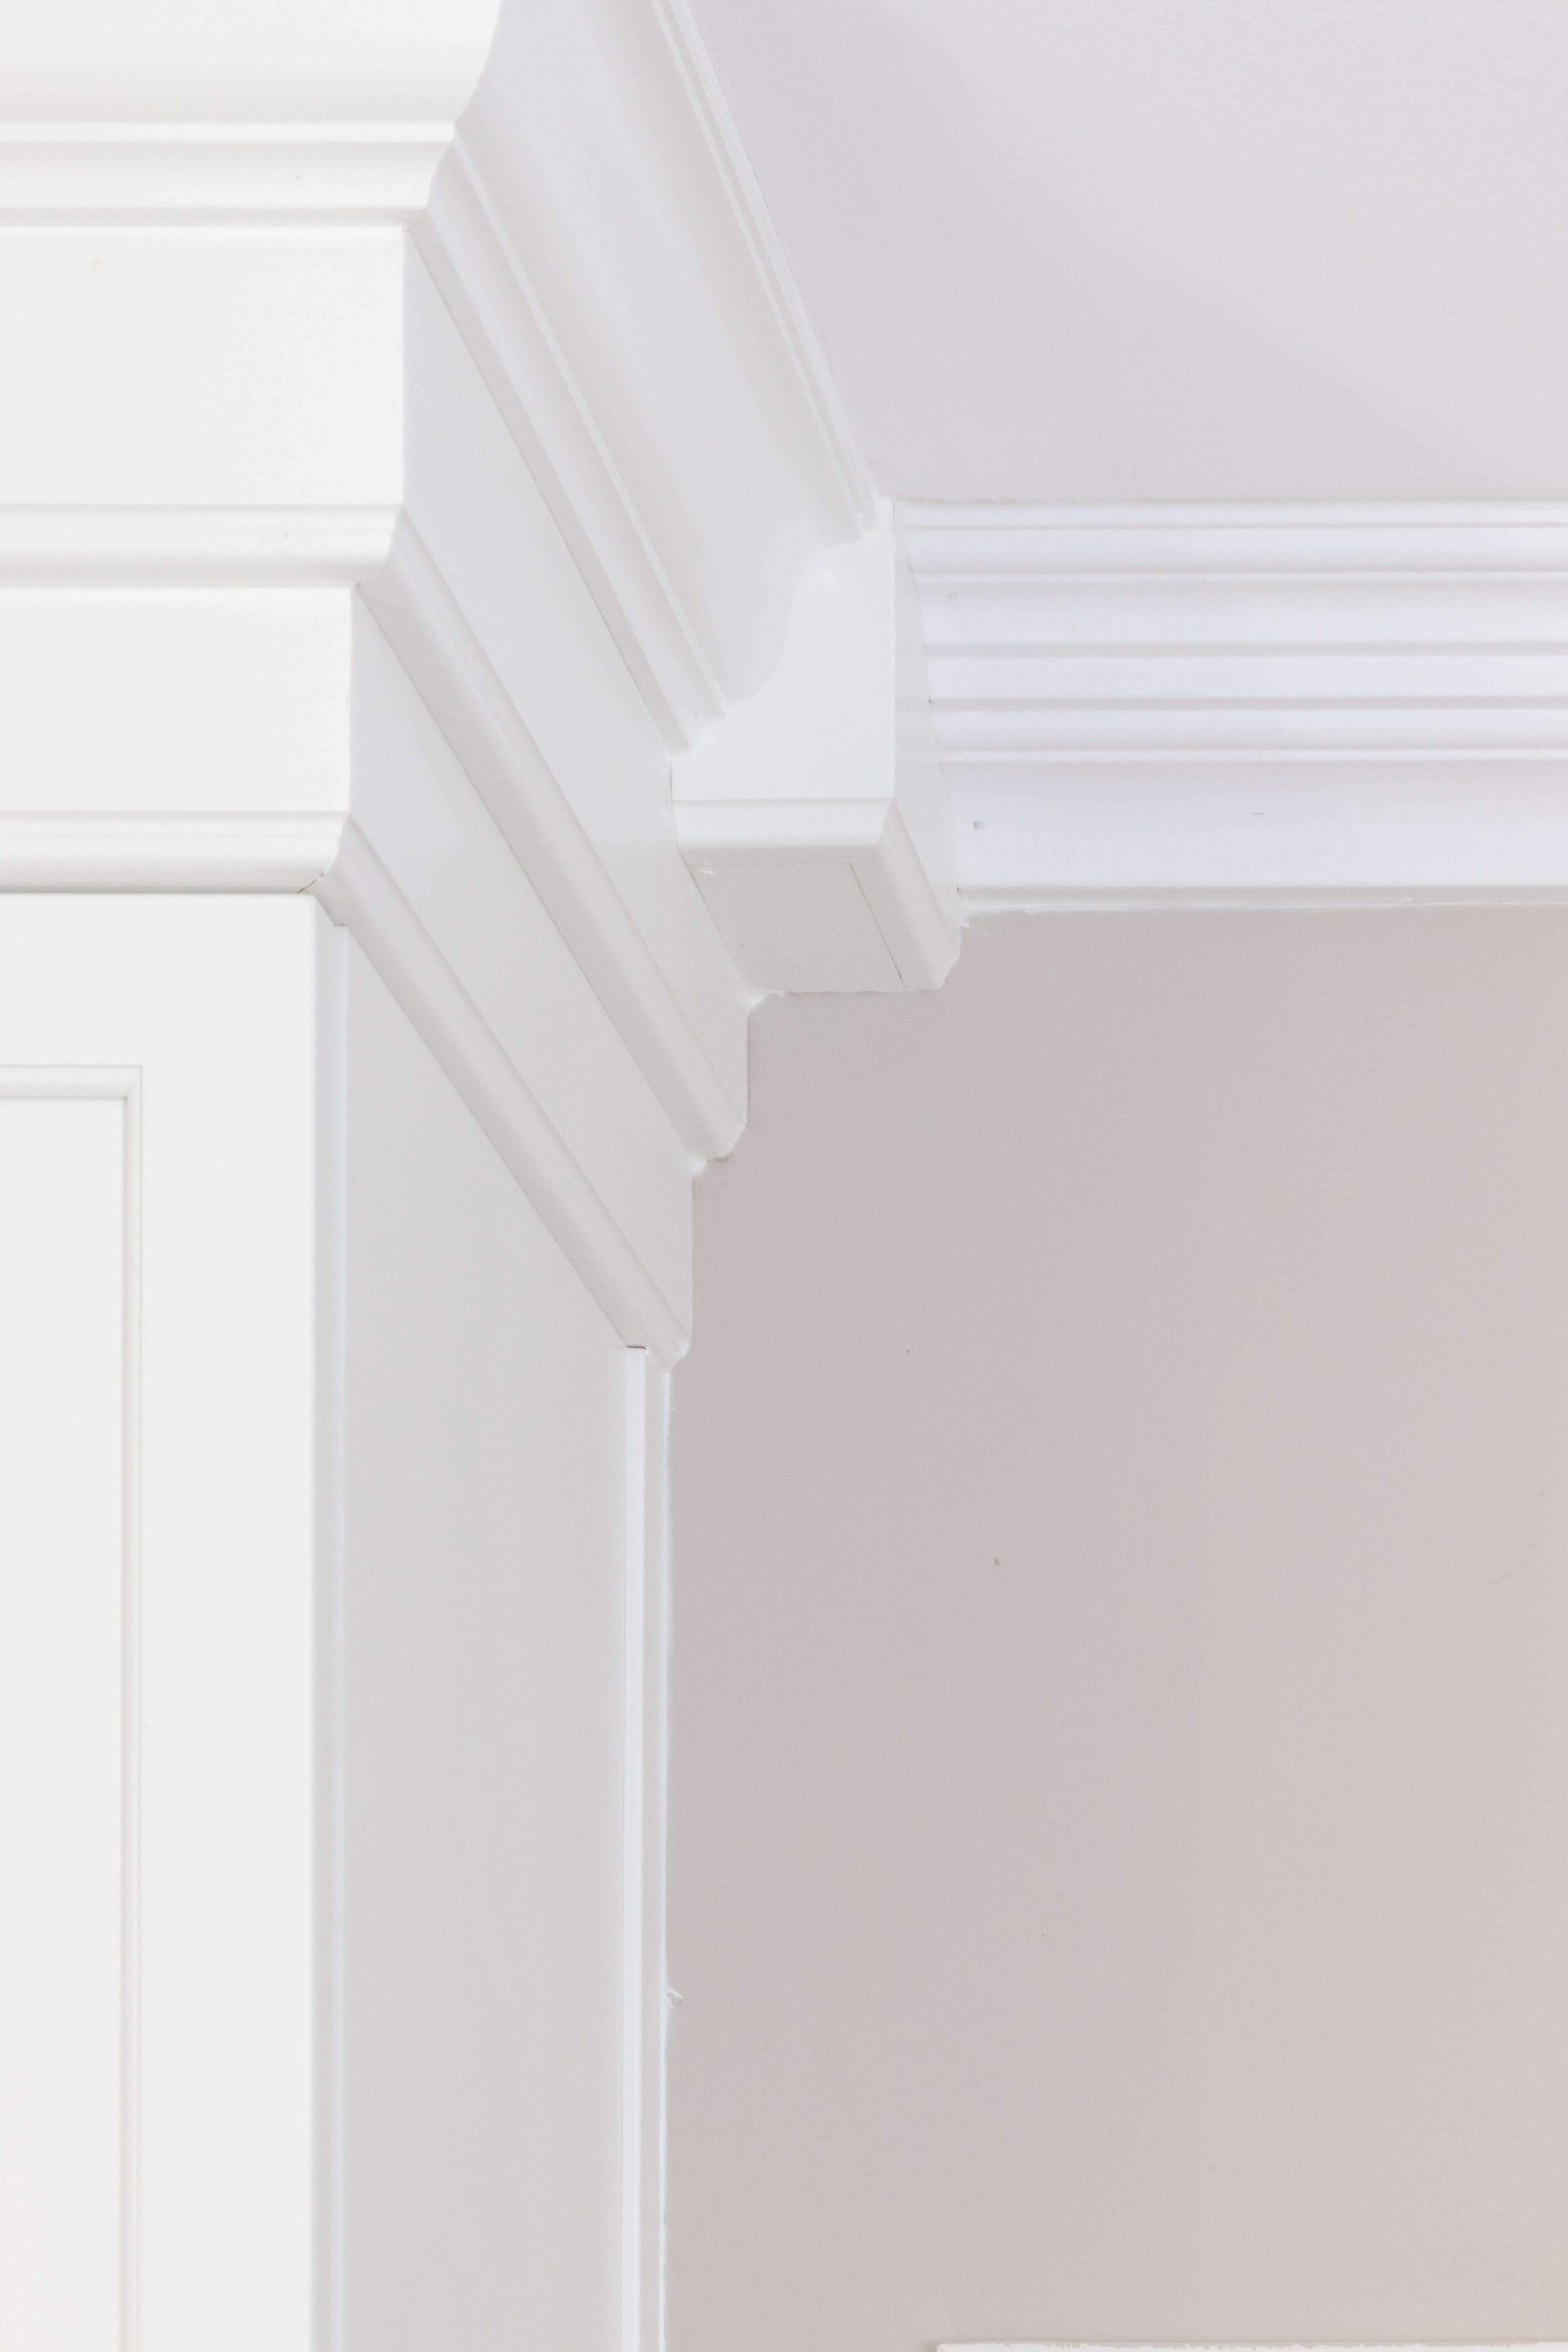 Triple Stack Crown Molding at the top of kitchen cabients from Dura Supreme Cabinetry